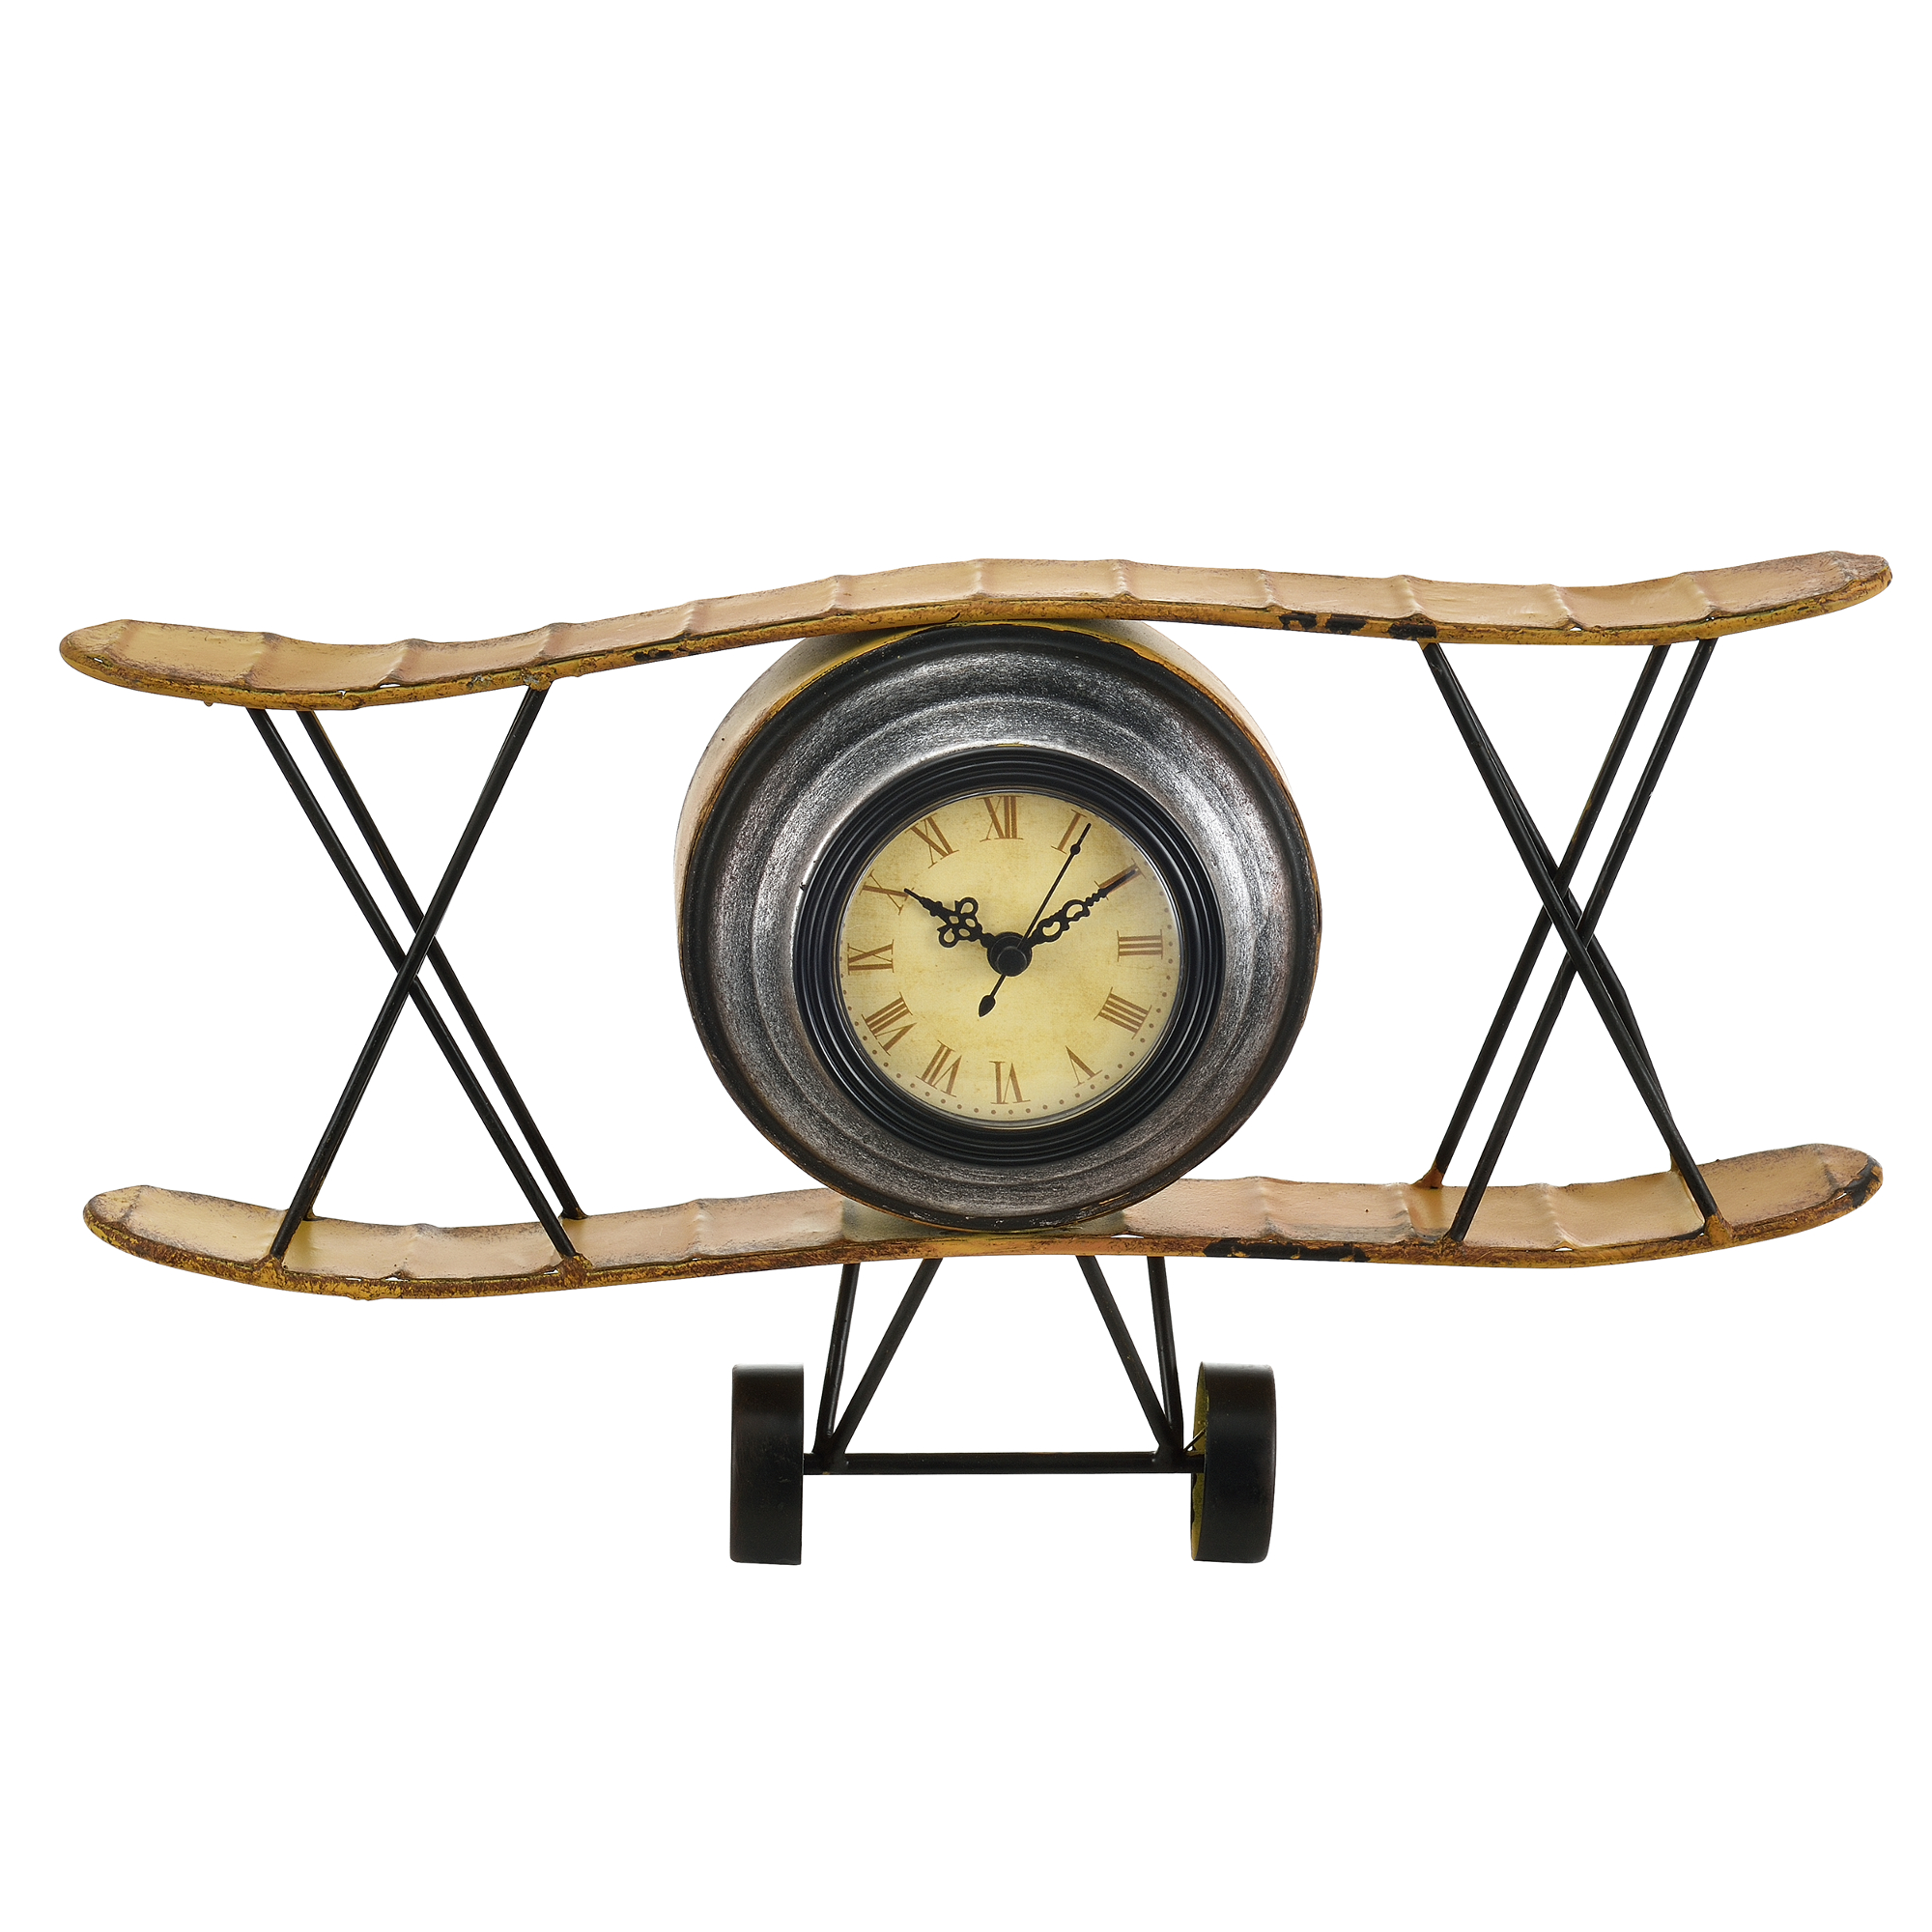 horloge murale avion m tal d co design horloge analogue murale ebay. Black Bedroom Furniture Sets. Home Design Ideas